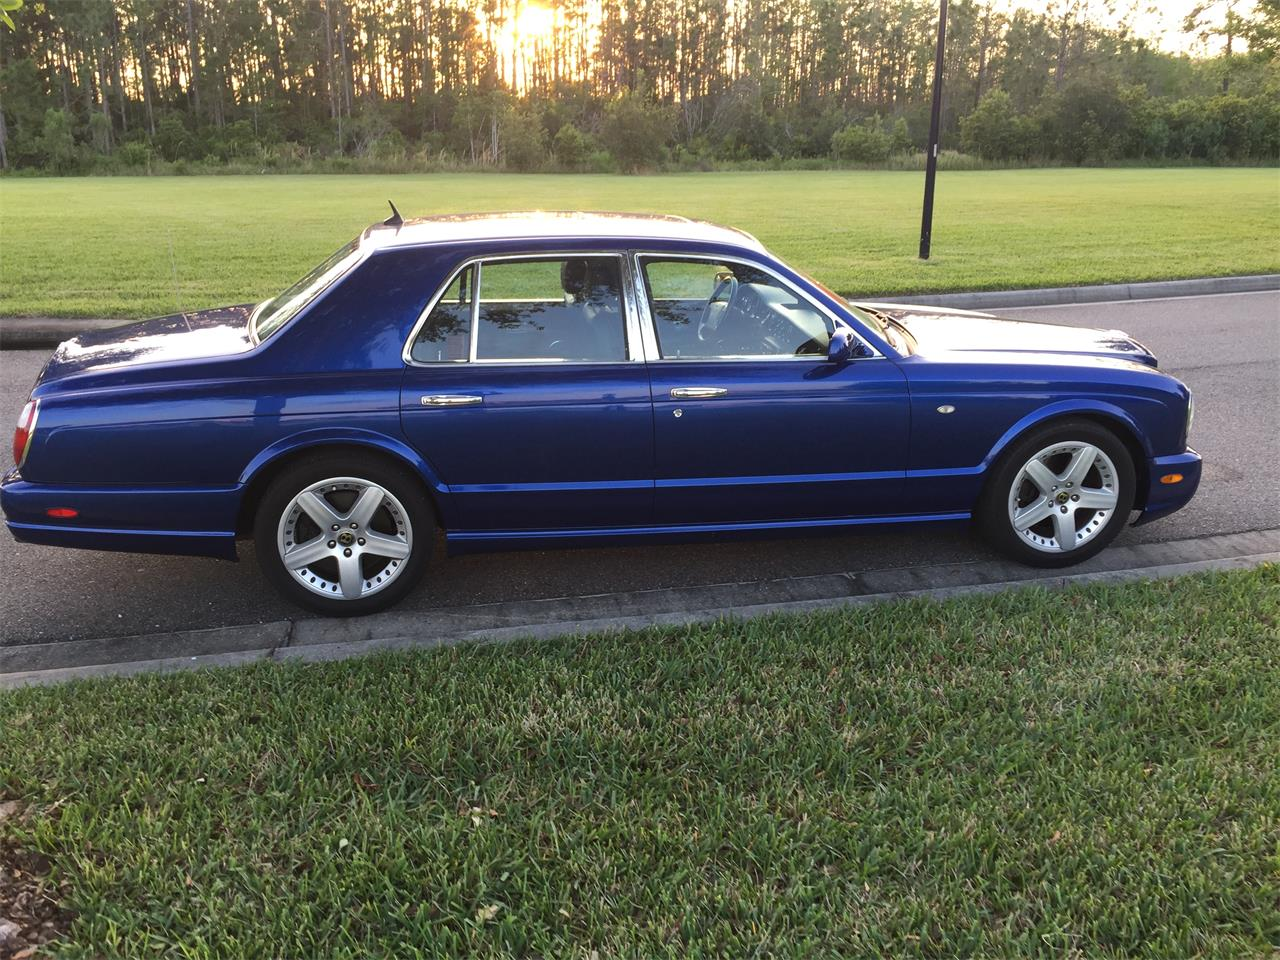 Large Picture of 2002 Arnage located in Orlando Florida Offered by a Private Seller - QUG1